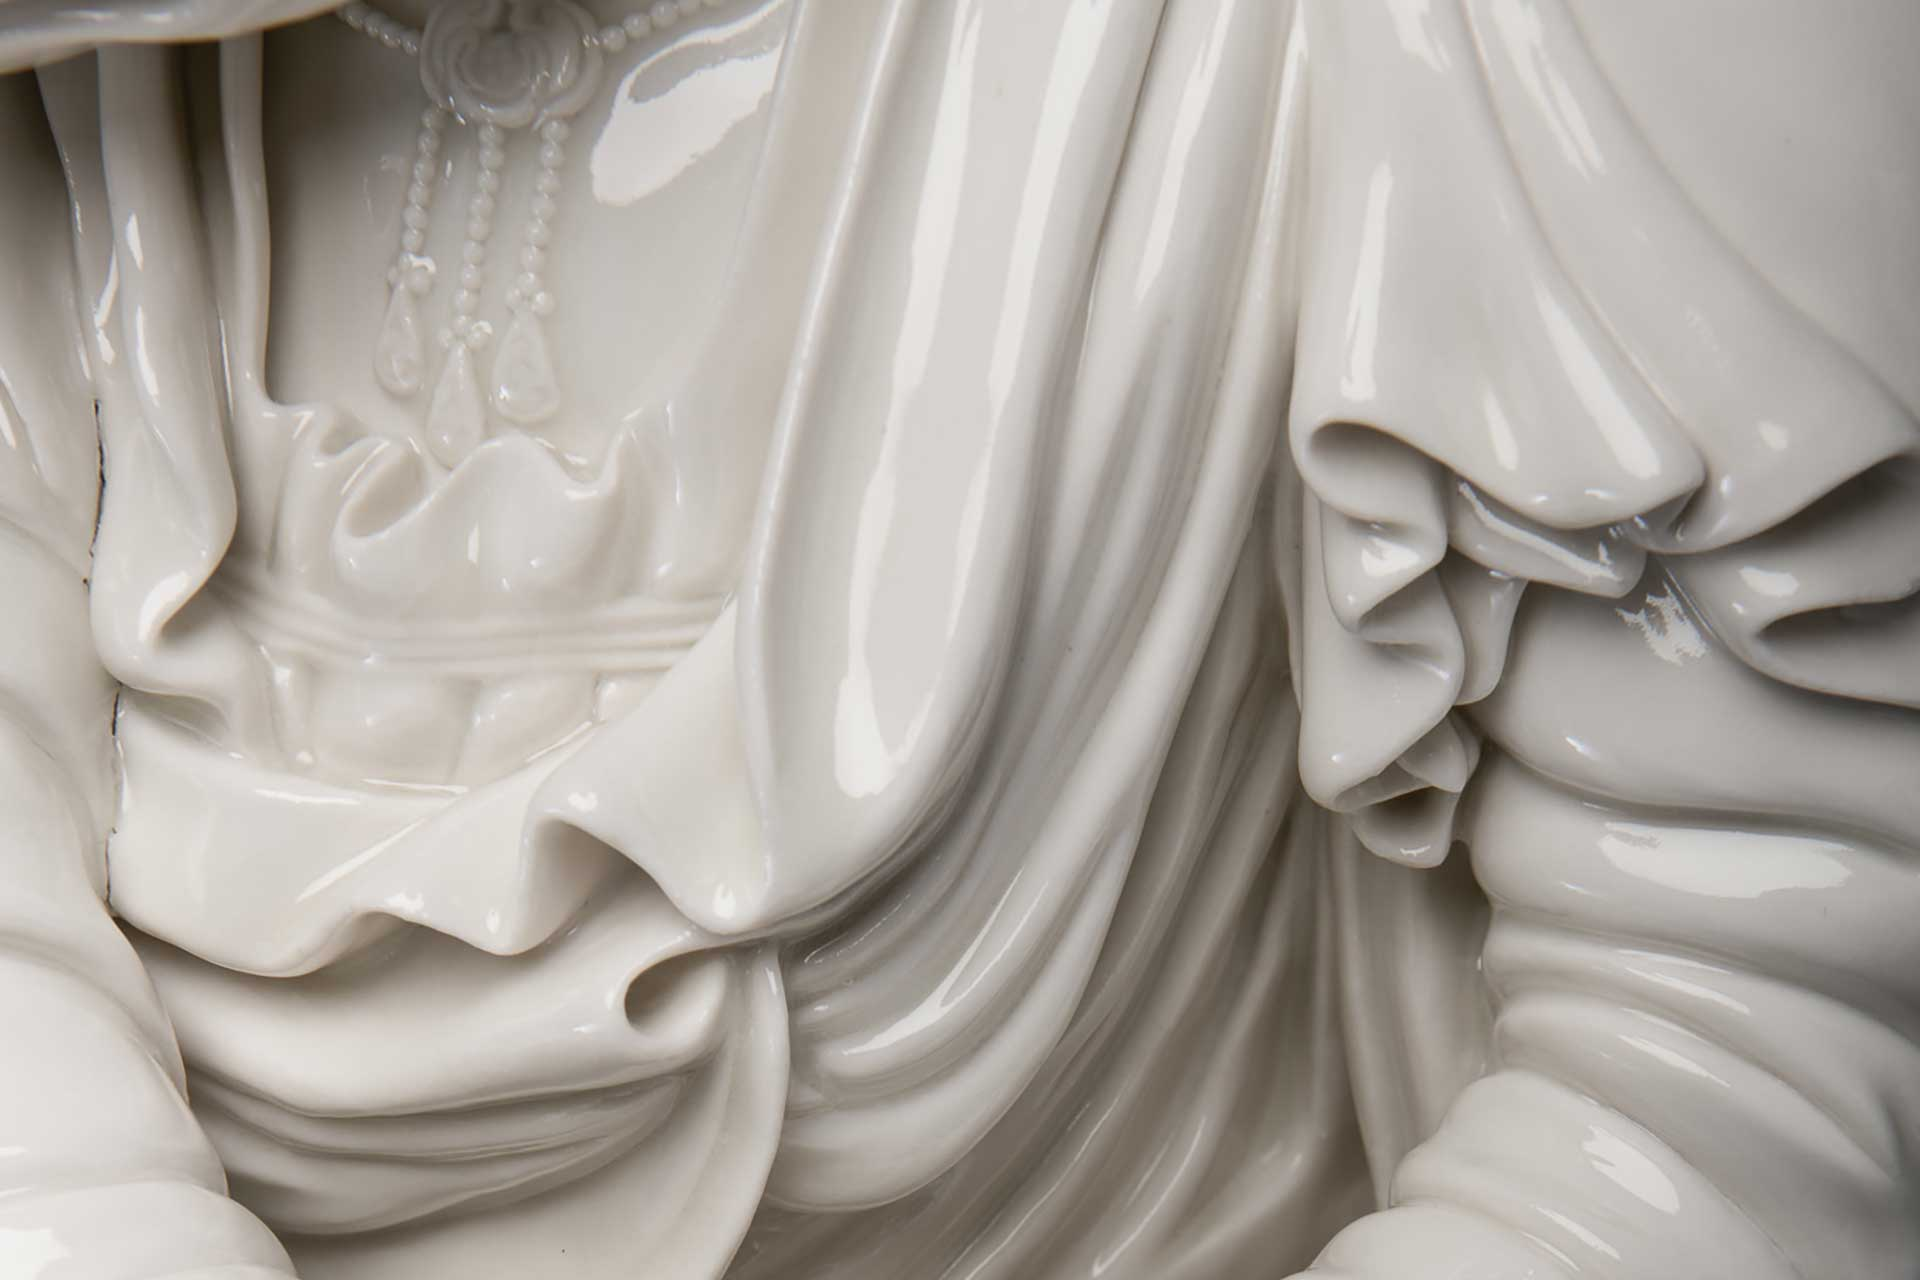 Penitent - glazed porcelain by Enrique Perezalba Red London